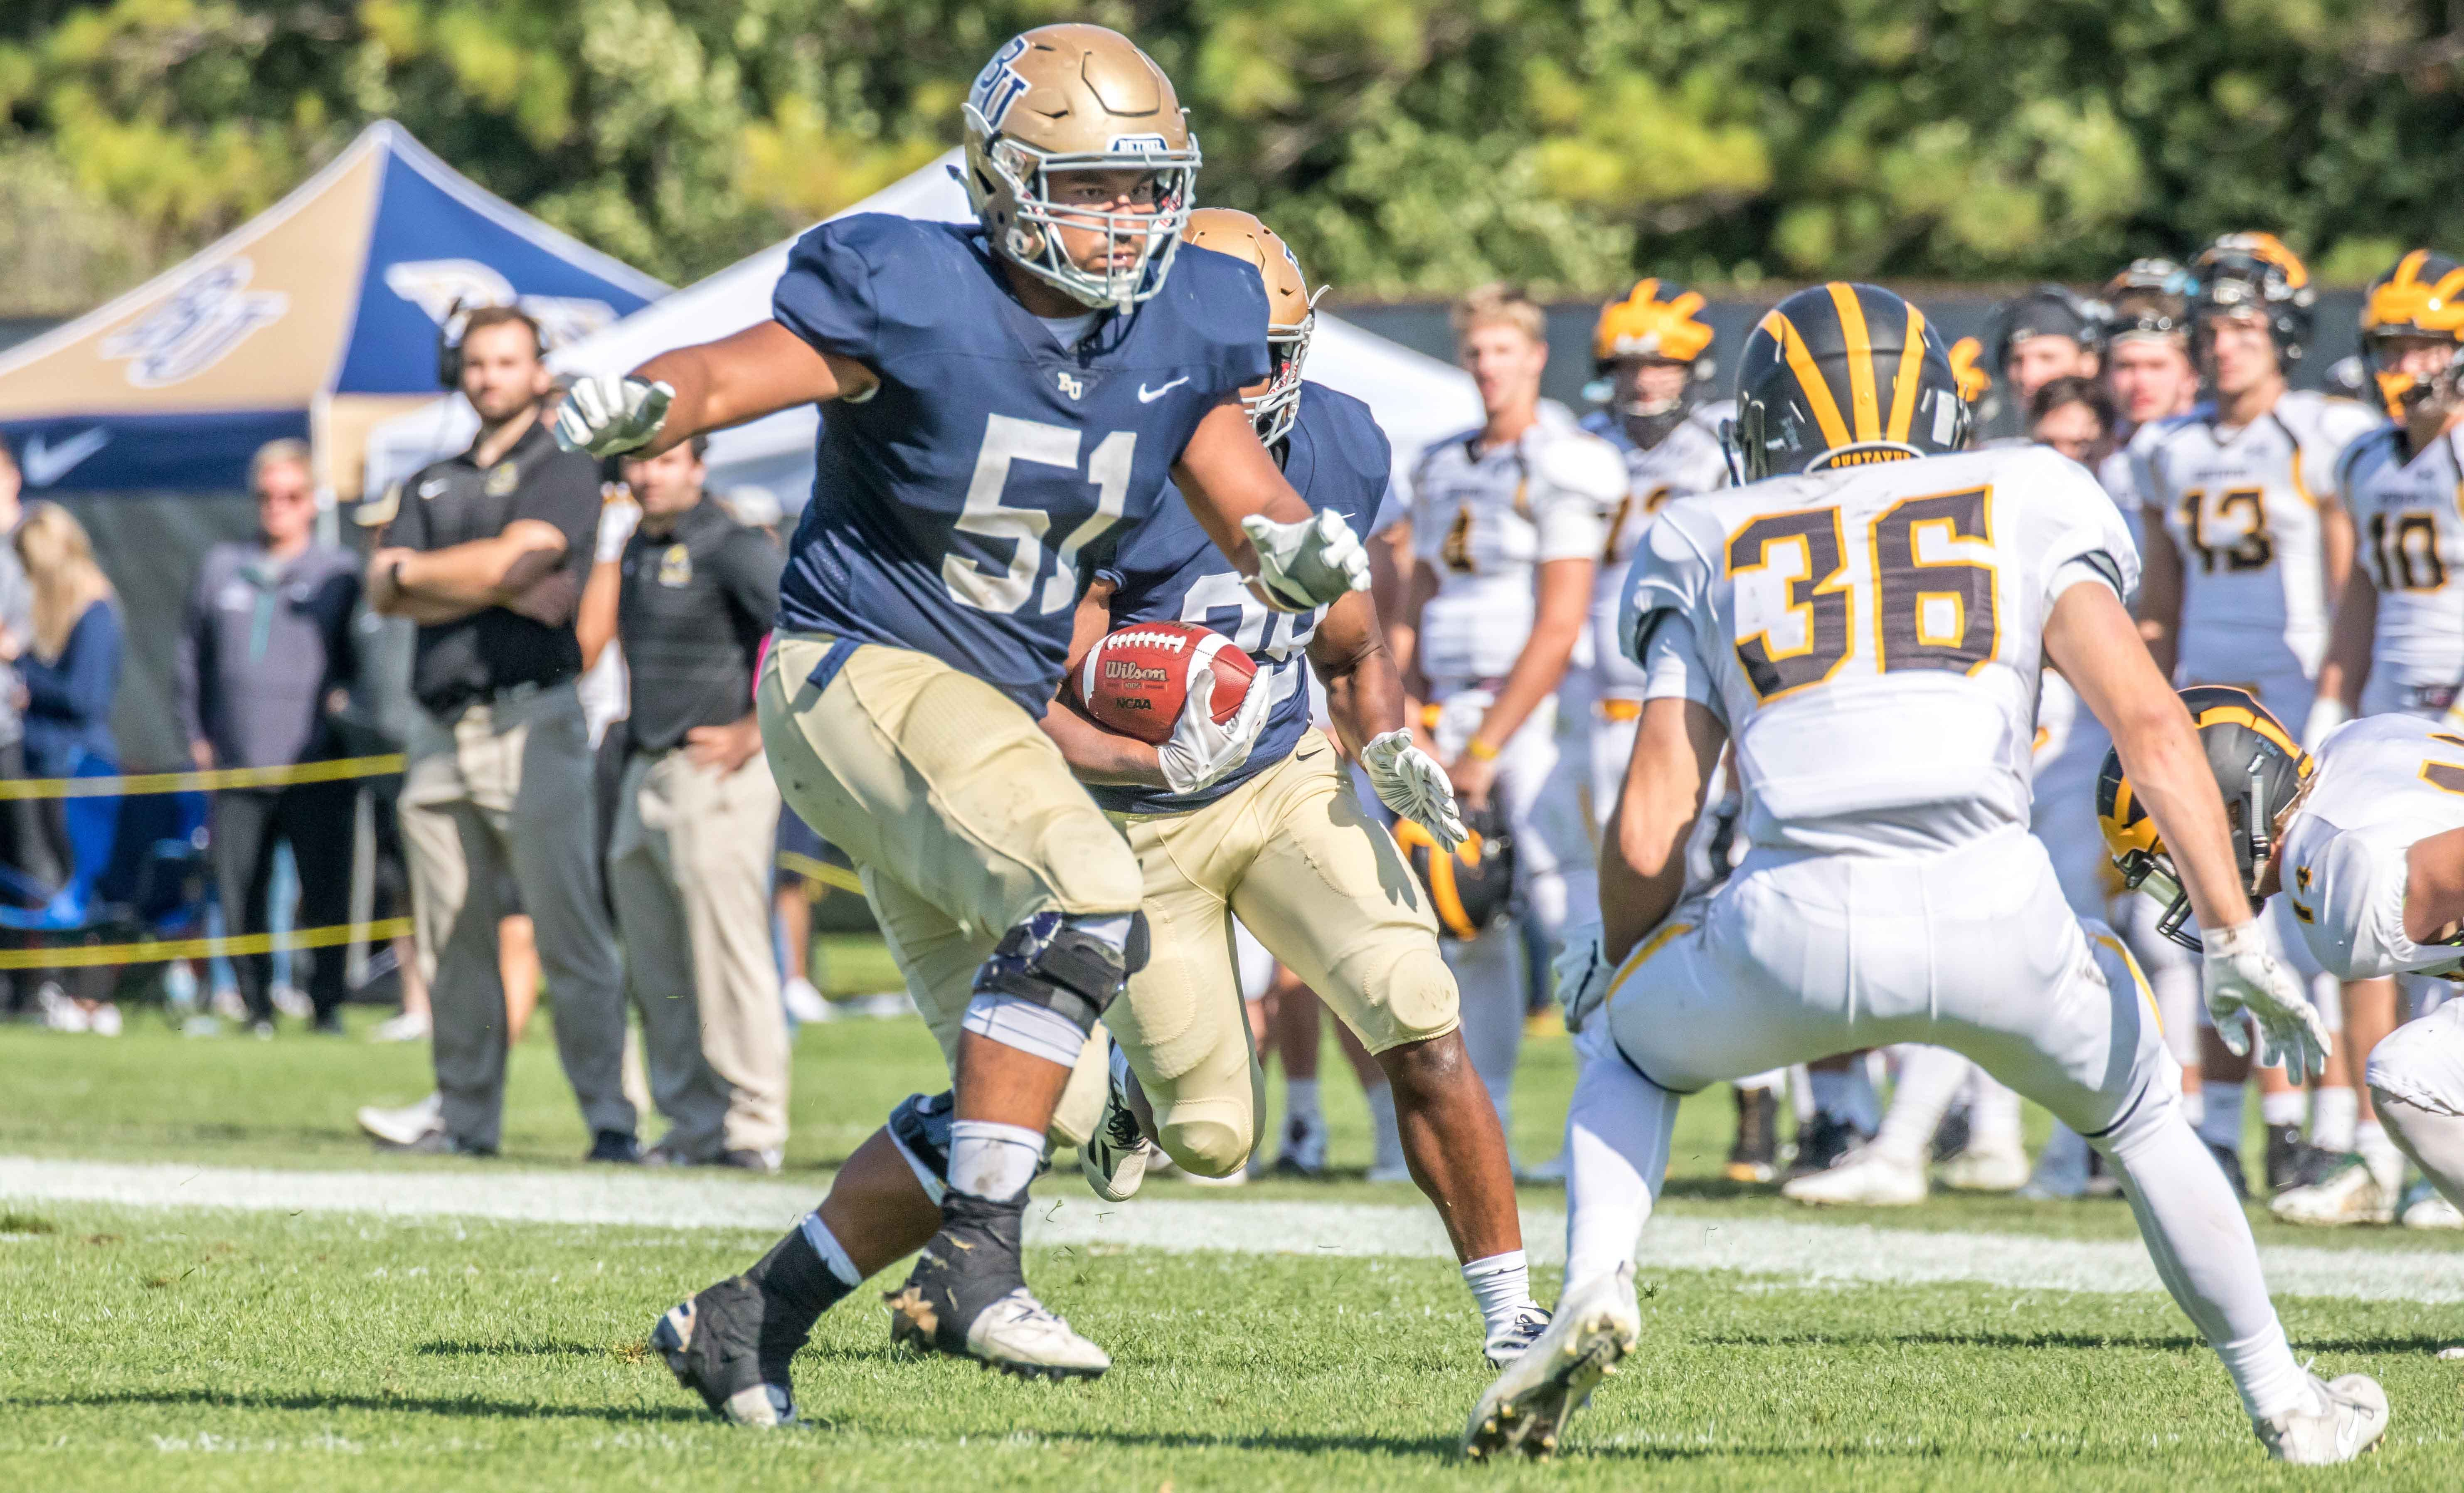 Danny Munoz '20 named to the 2019 Allstate AFCA Good Works Team